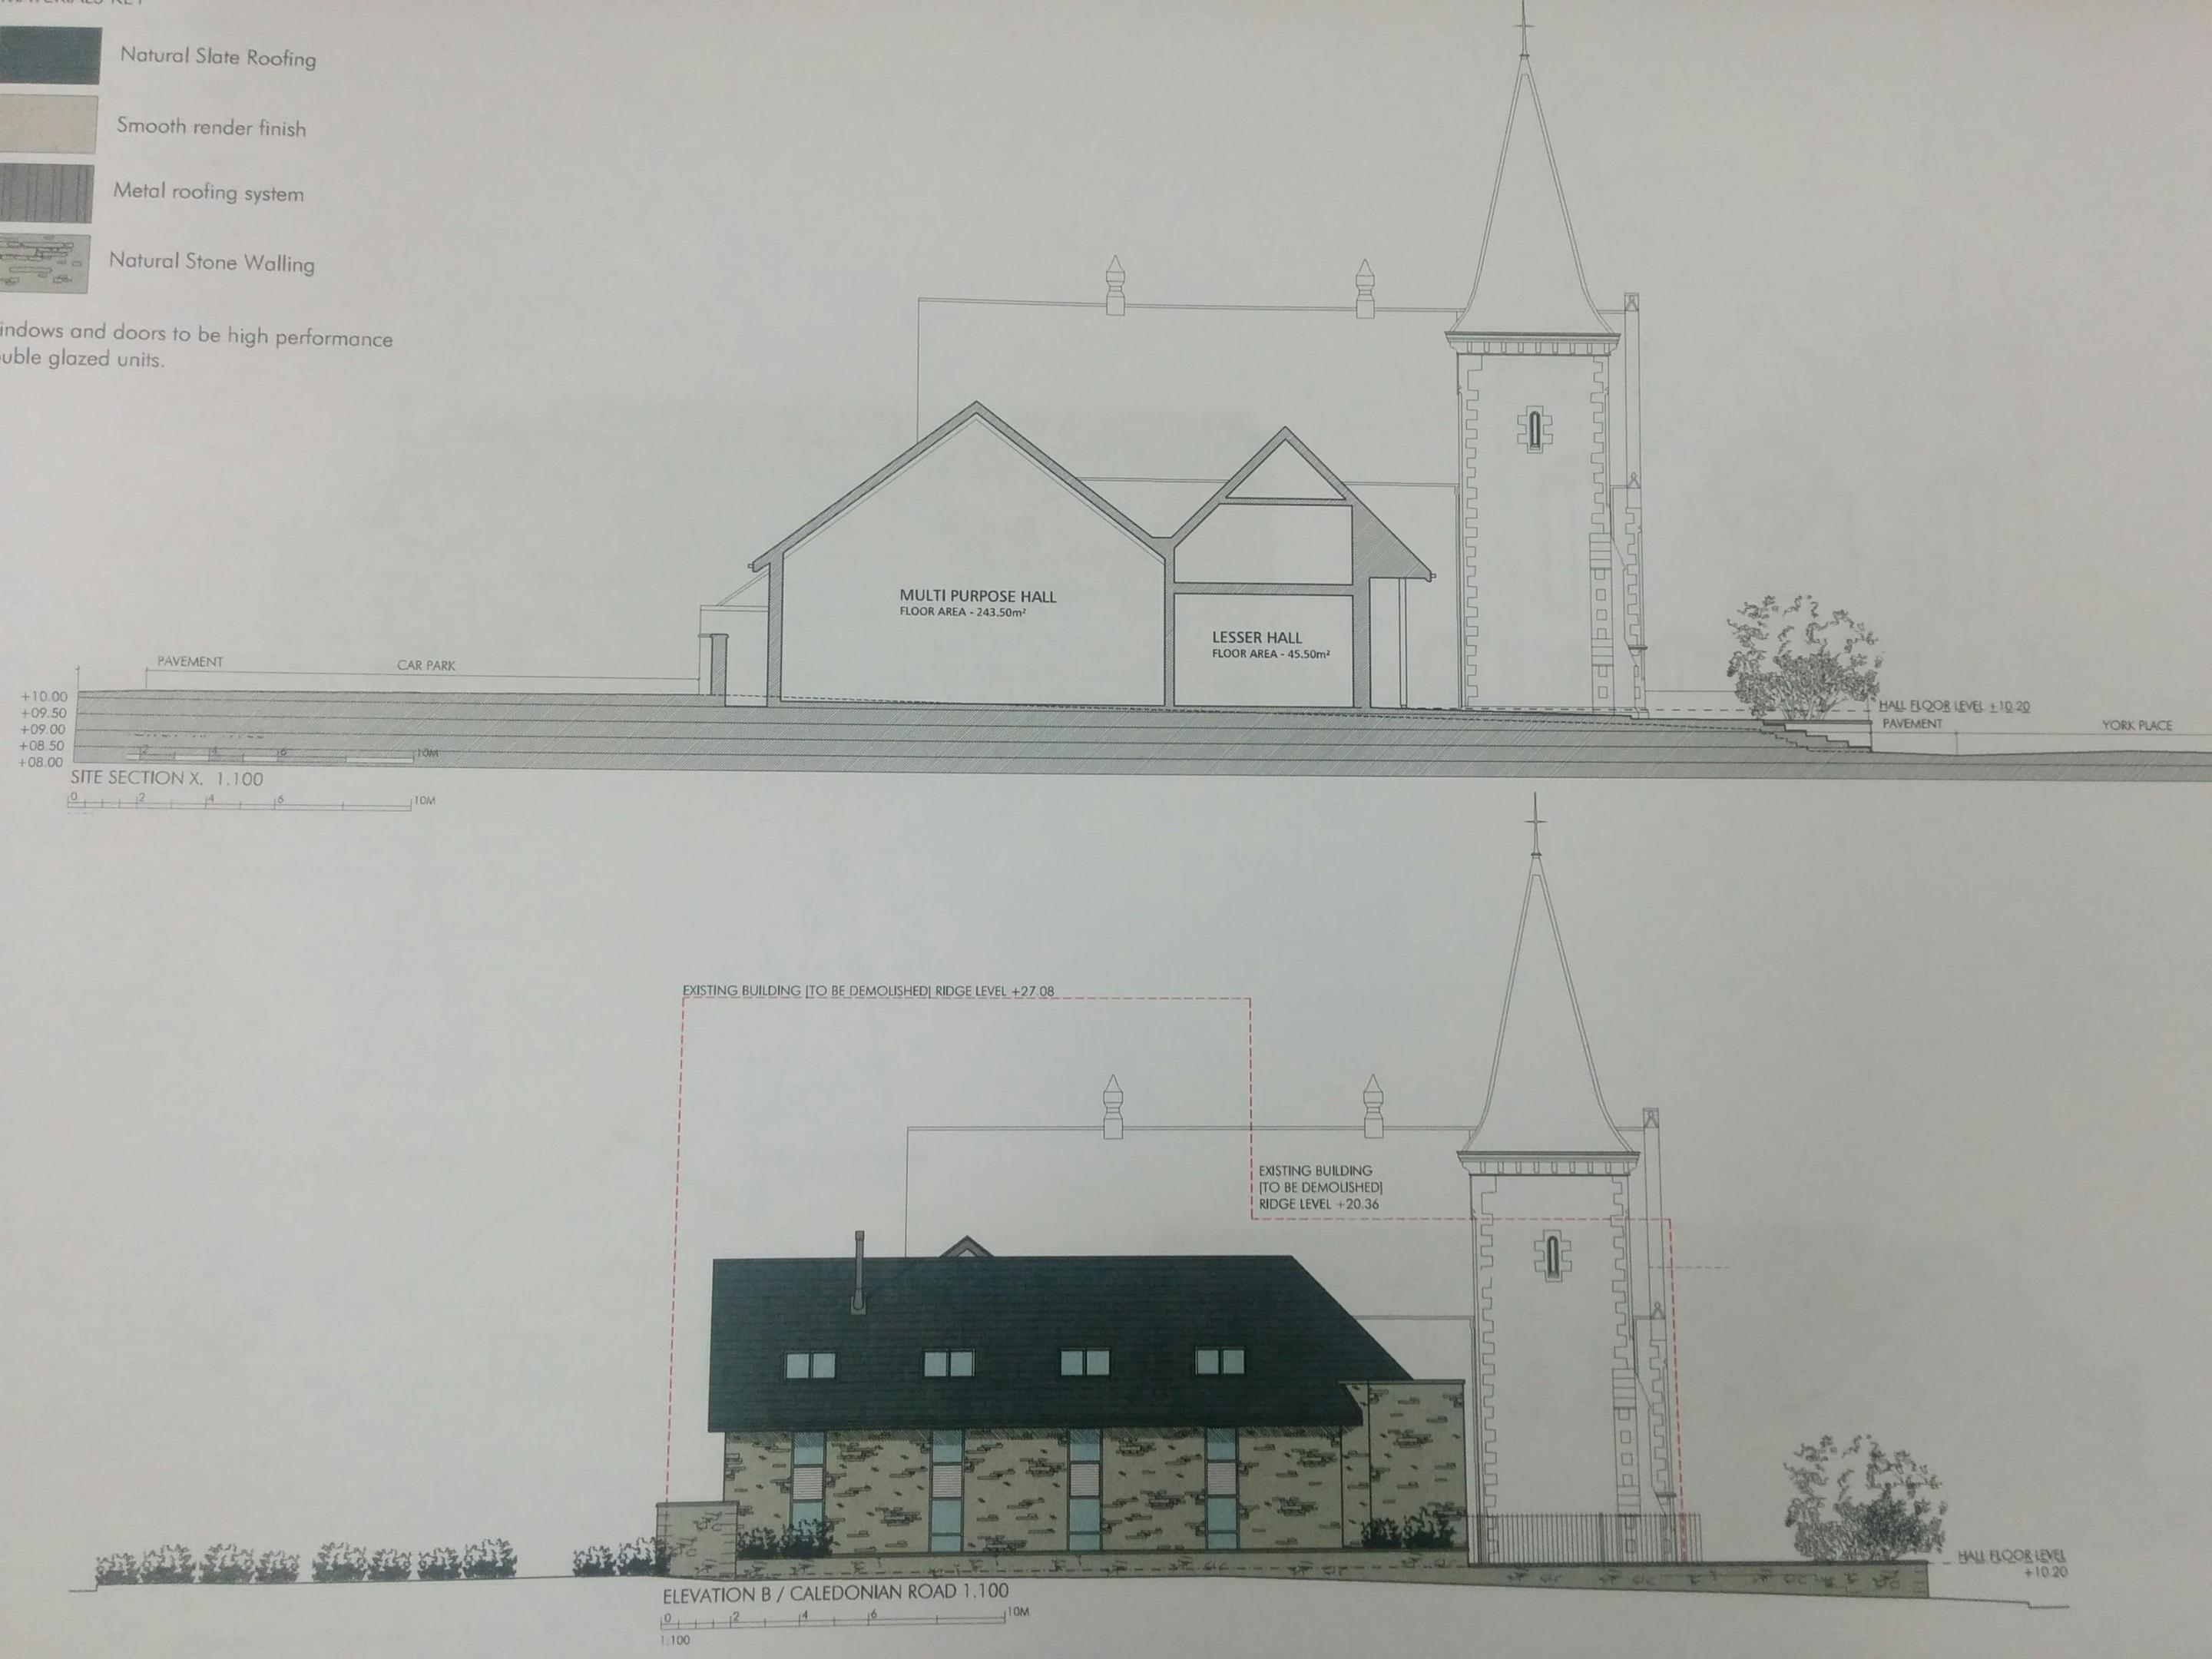 Graphic of the revised plans for the Waverley Hotel in Perth.